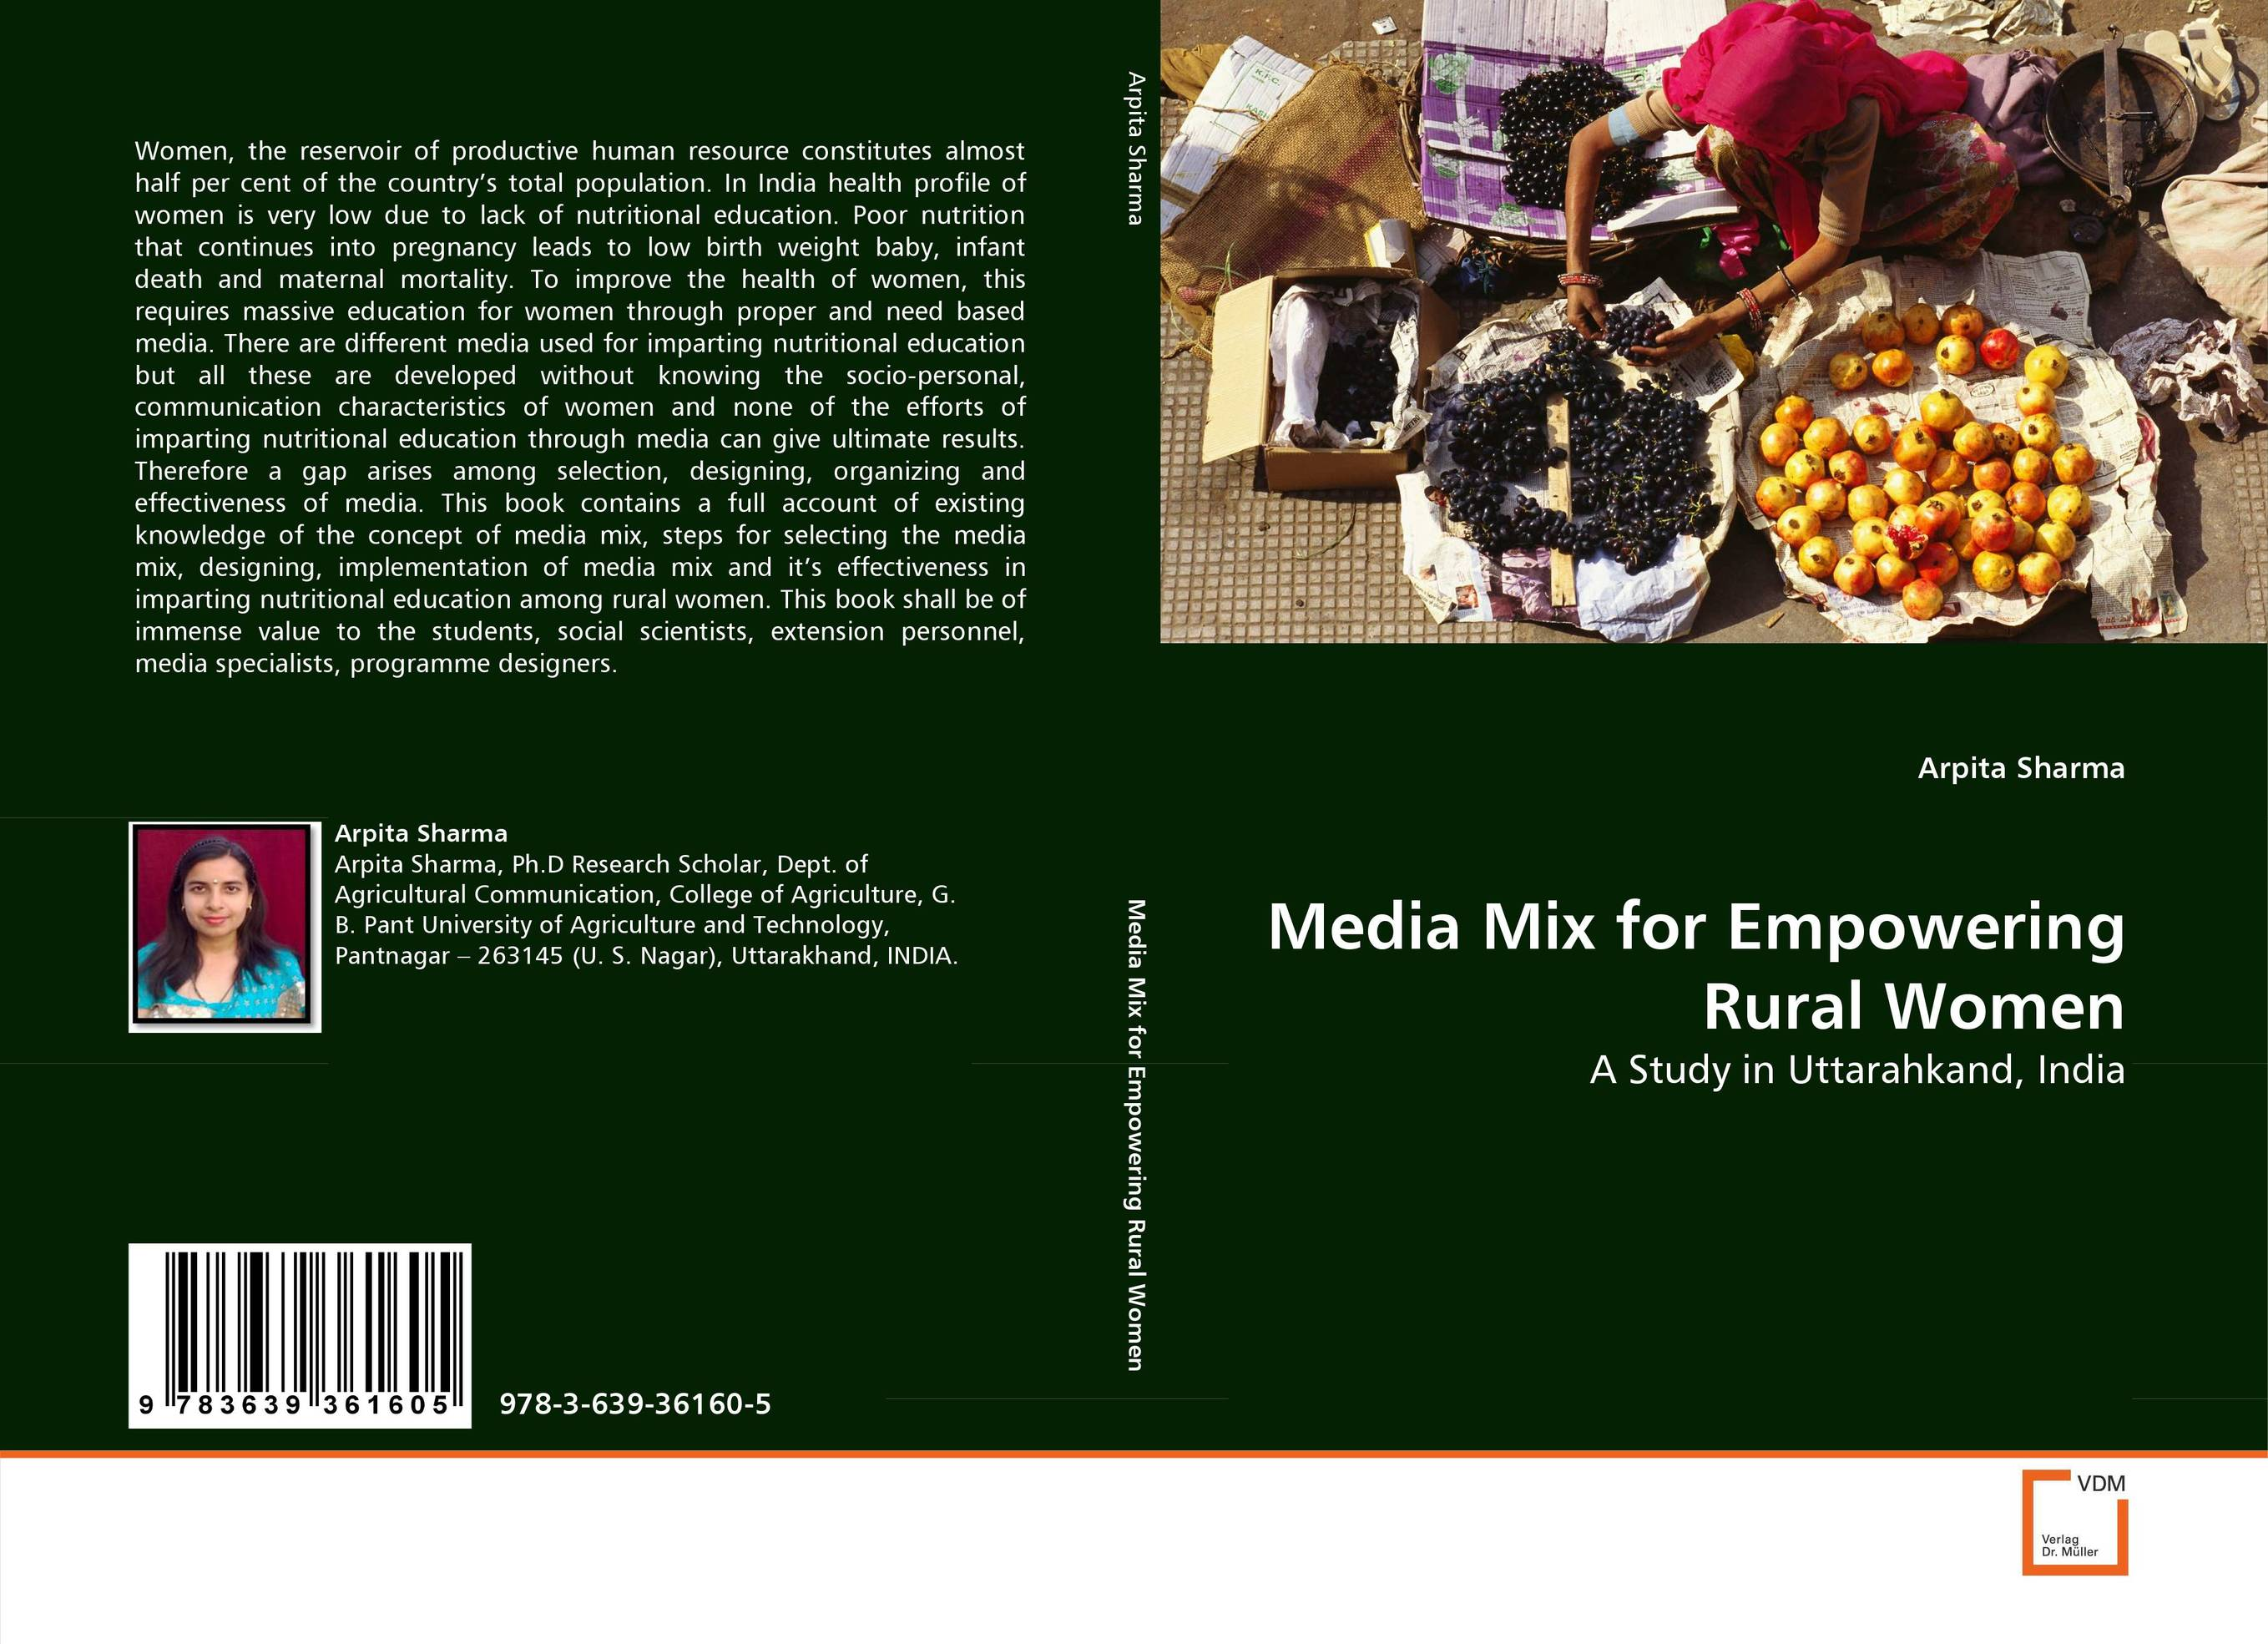 Media Mix for Empowering Rural Women promotion mix strategies of icam through social media